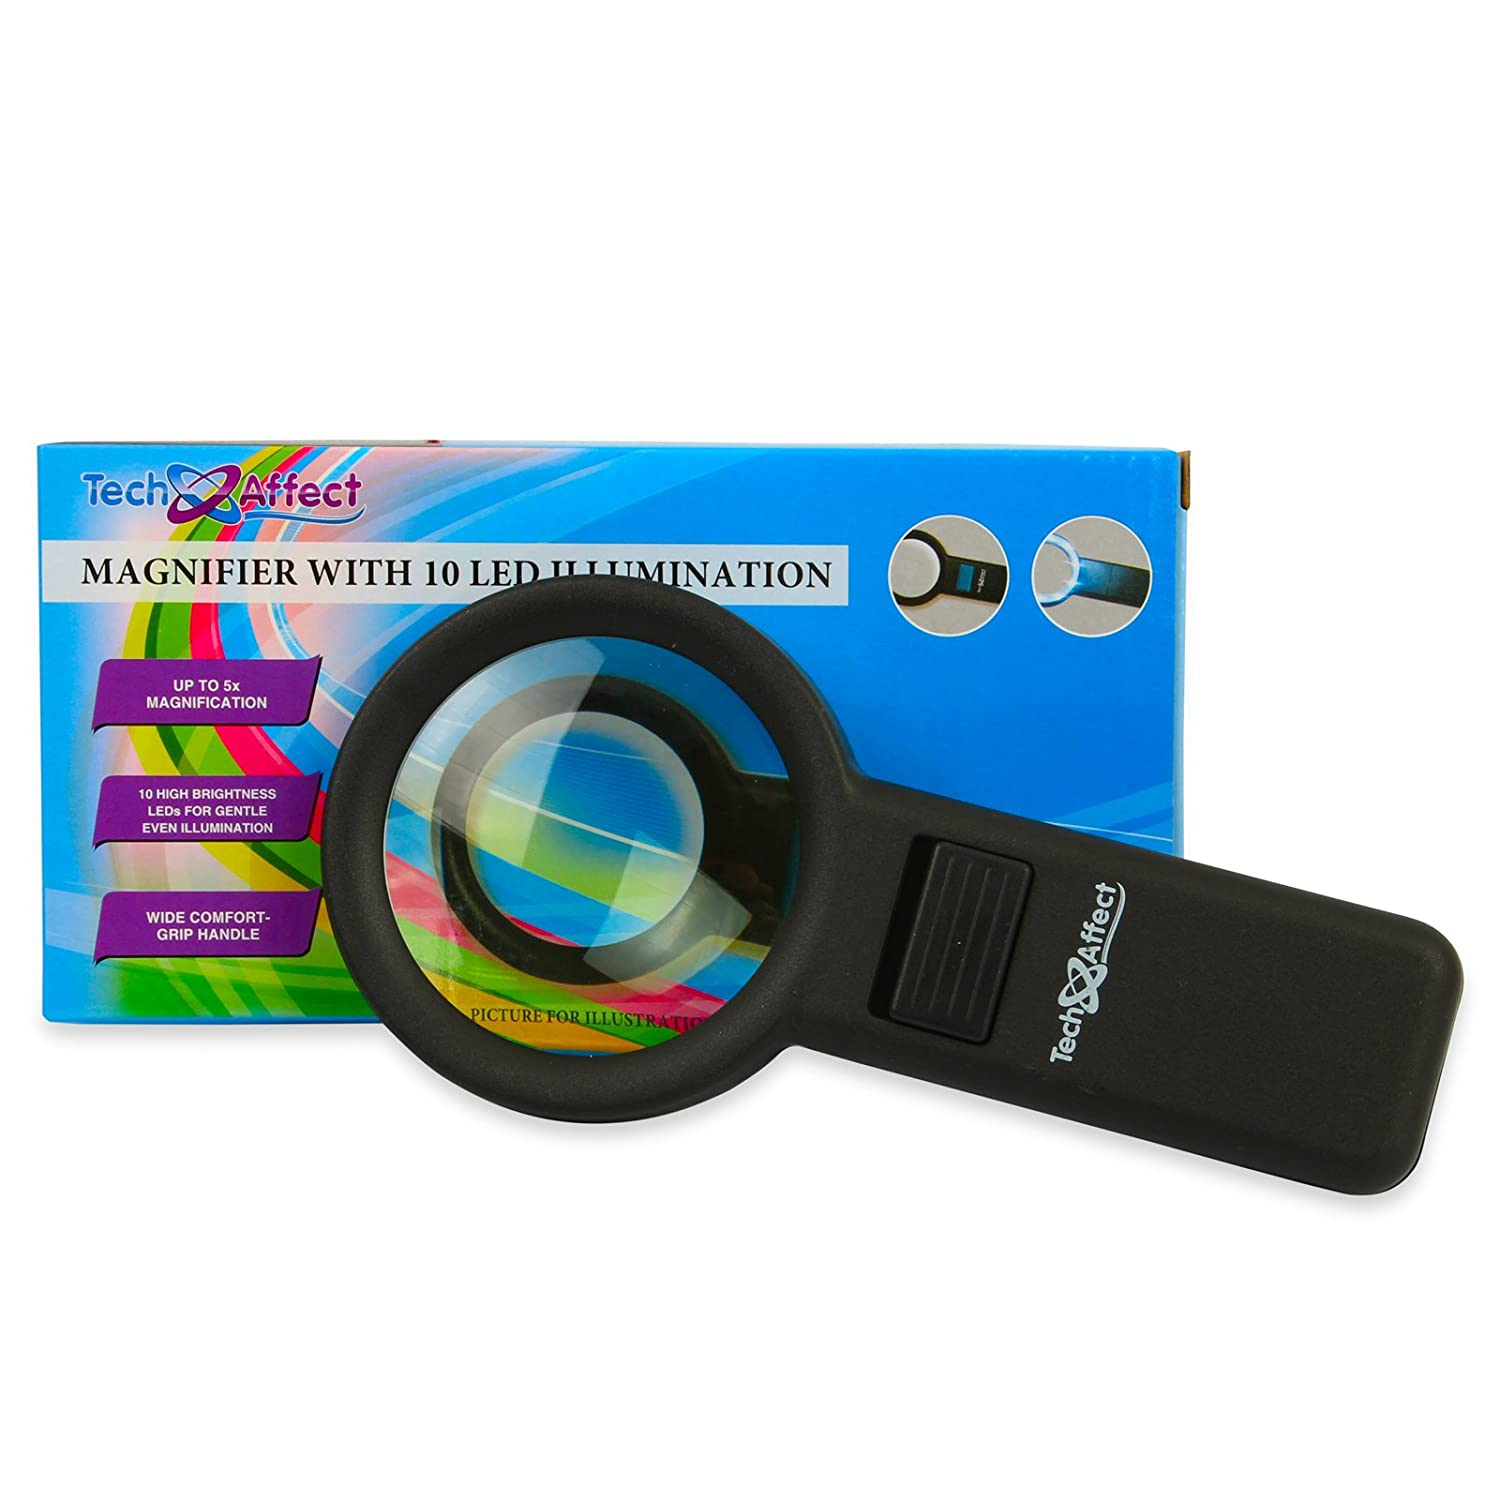 Colour: Blac These Quality Viewing Glasses are Large but Lightweight with a Comfortable Handle so are an Ideal Reading Aid for the Partially Sighted or Anyone Hand held Lighted Magnifying Glass Illuminated Magnifier with 5x Magnification and 10 LED Lamp